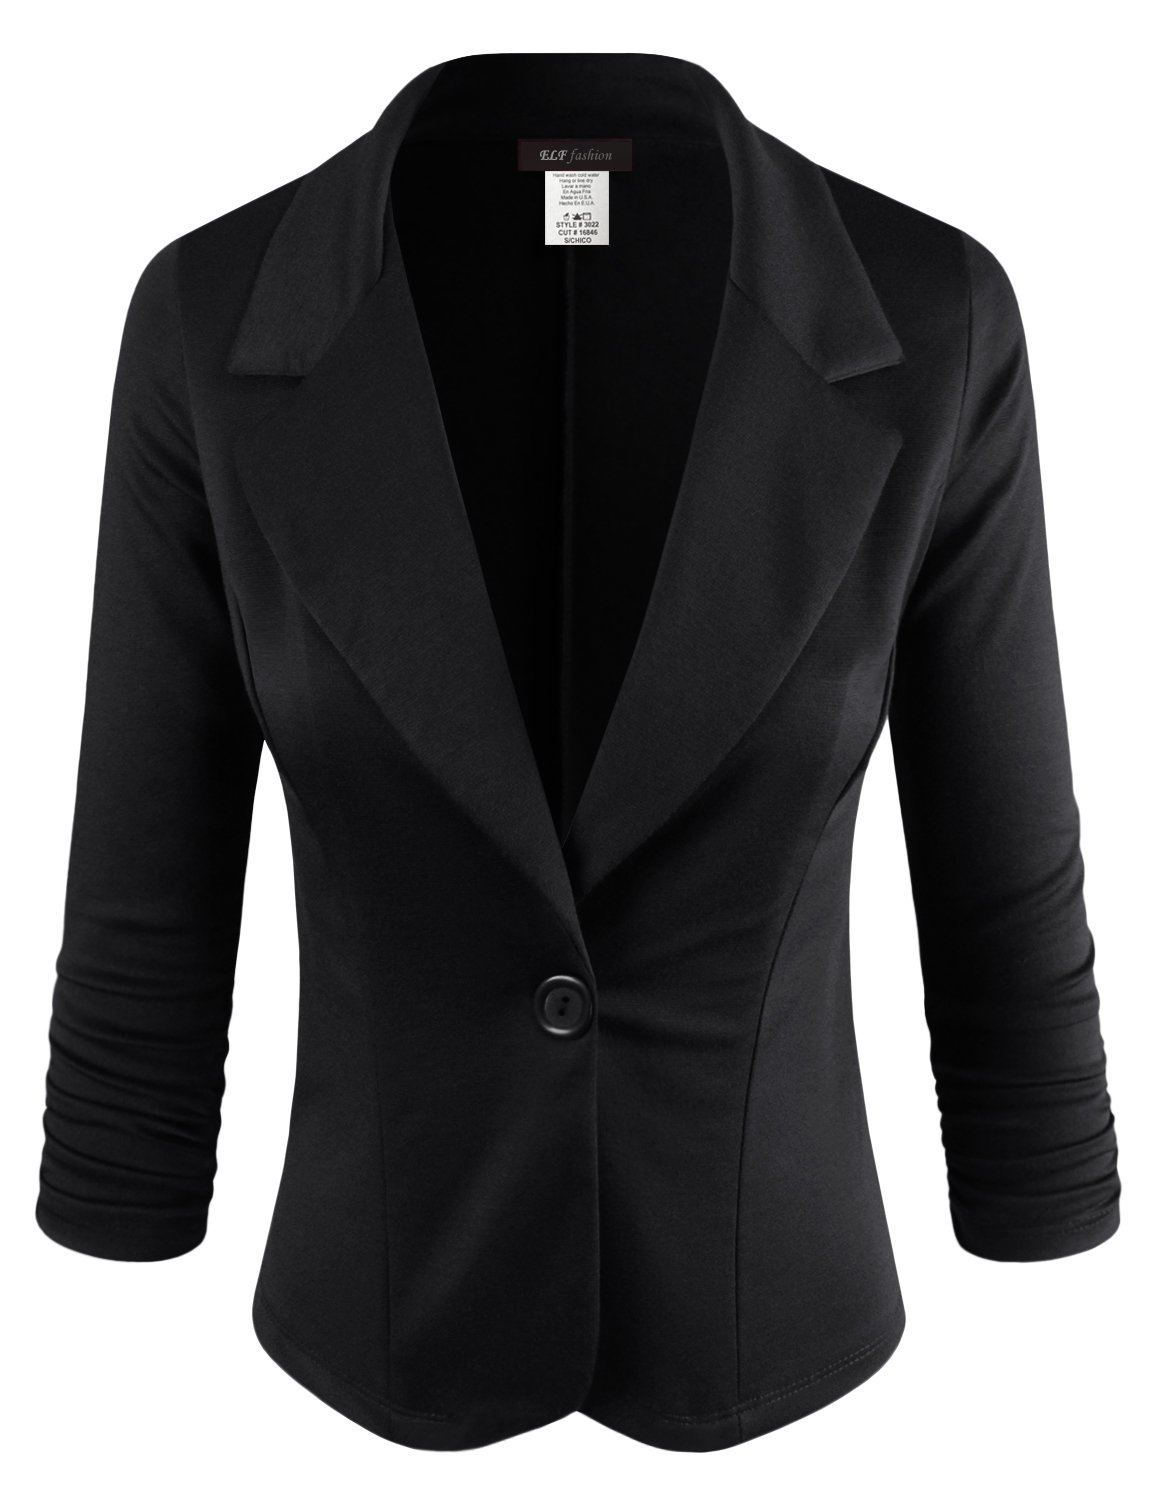 ELF FASHION Women Casual Work Knit Office Blazer Jacket Made in USA (Size S~3XL) Black M